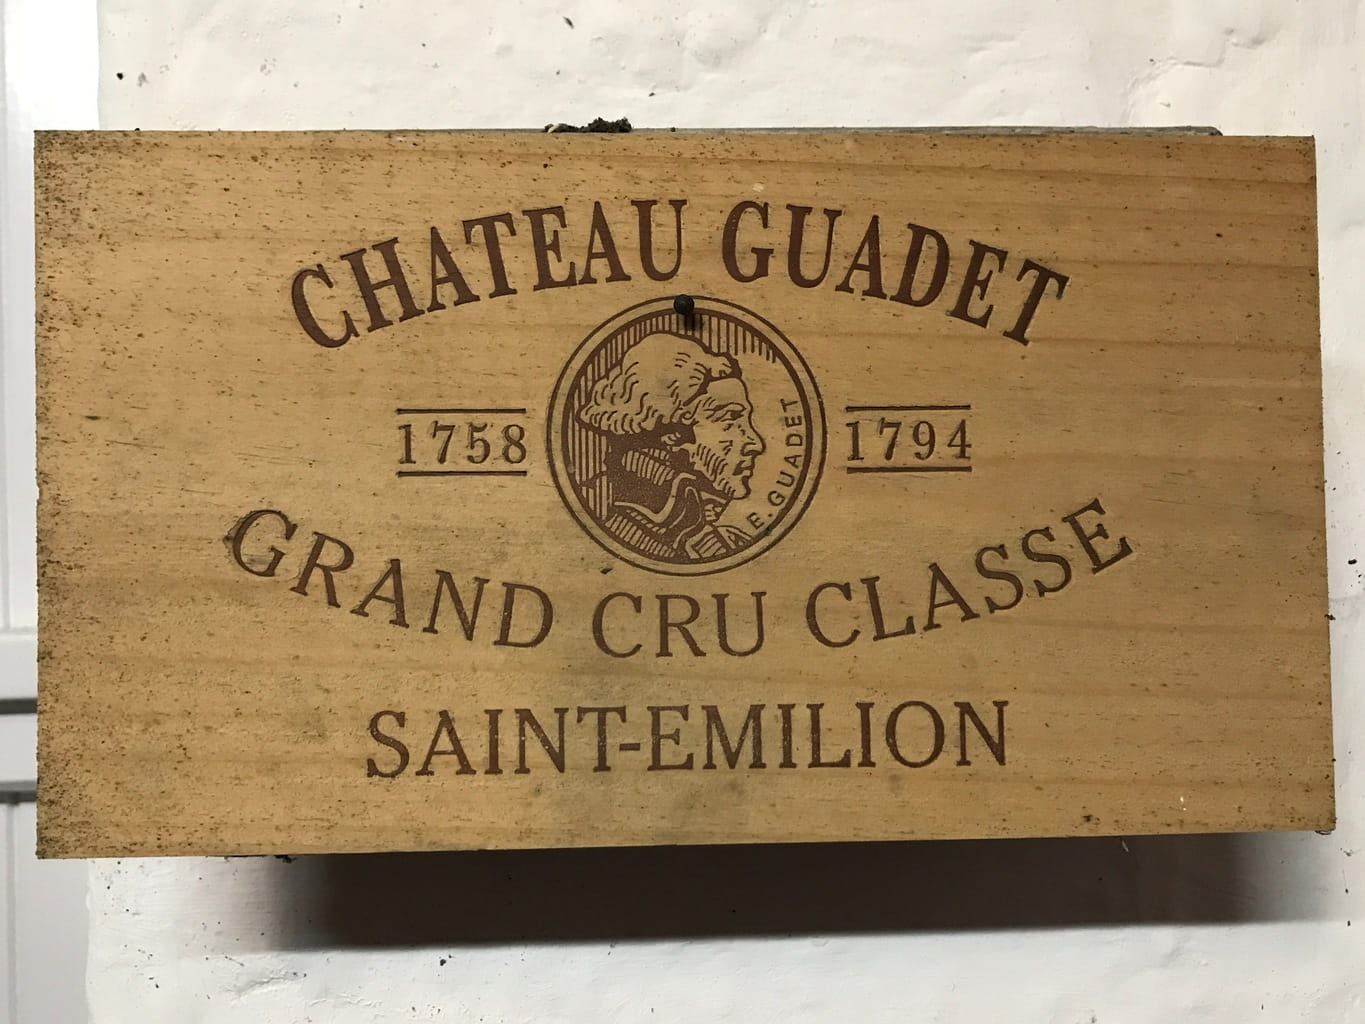 The day starts with a Premier Grand Cru Classe.